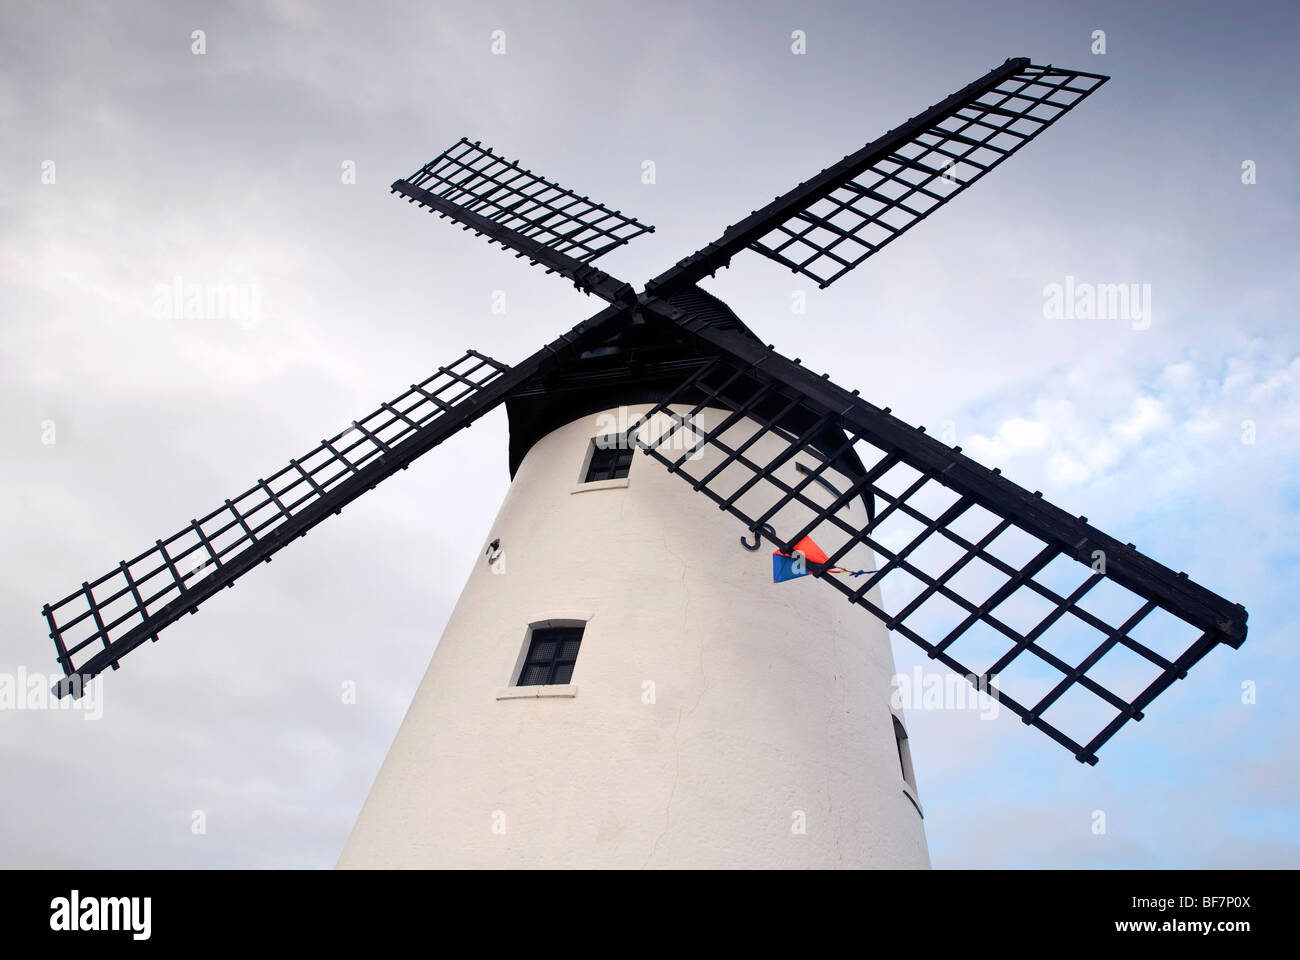 The windmill on the seafront at Lytham St. Annes in Lancashire. - Stock Image